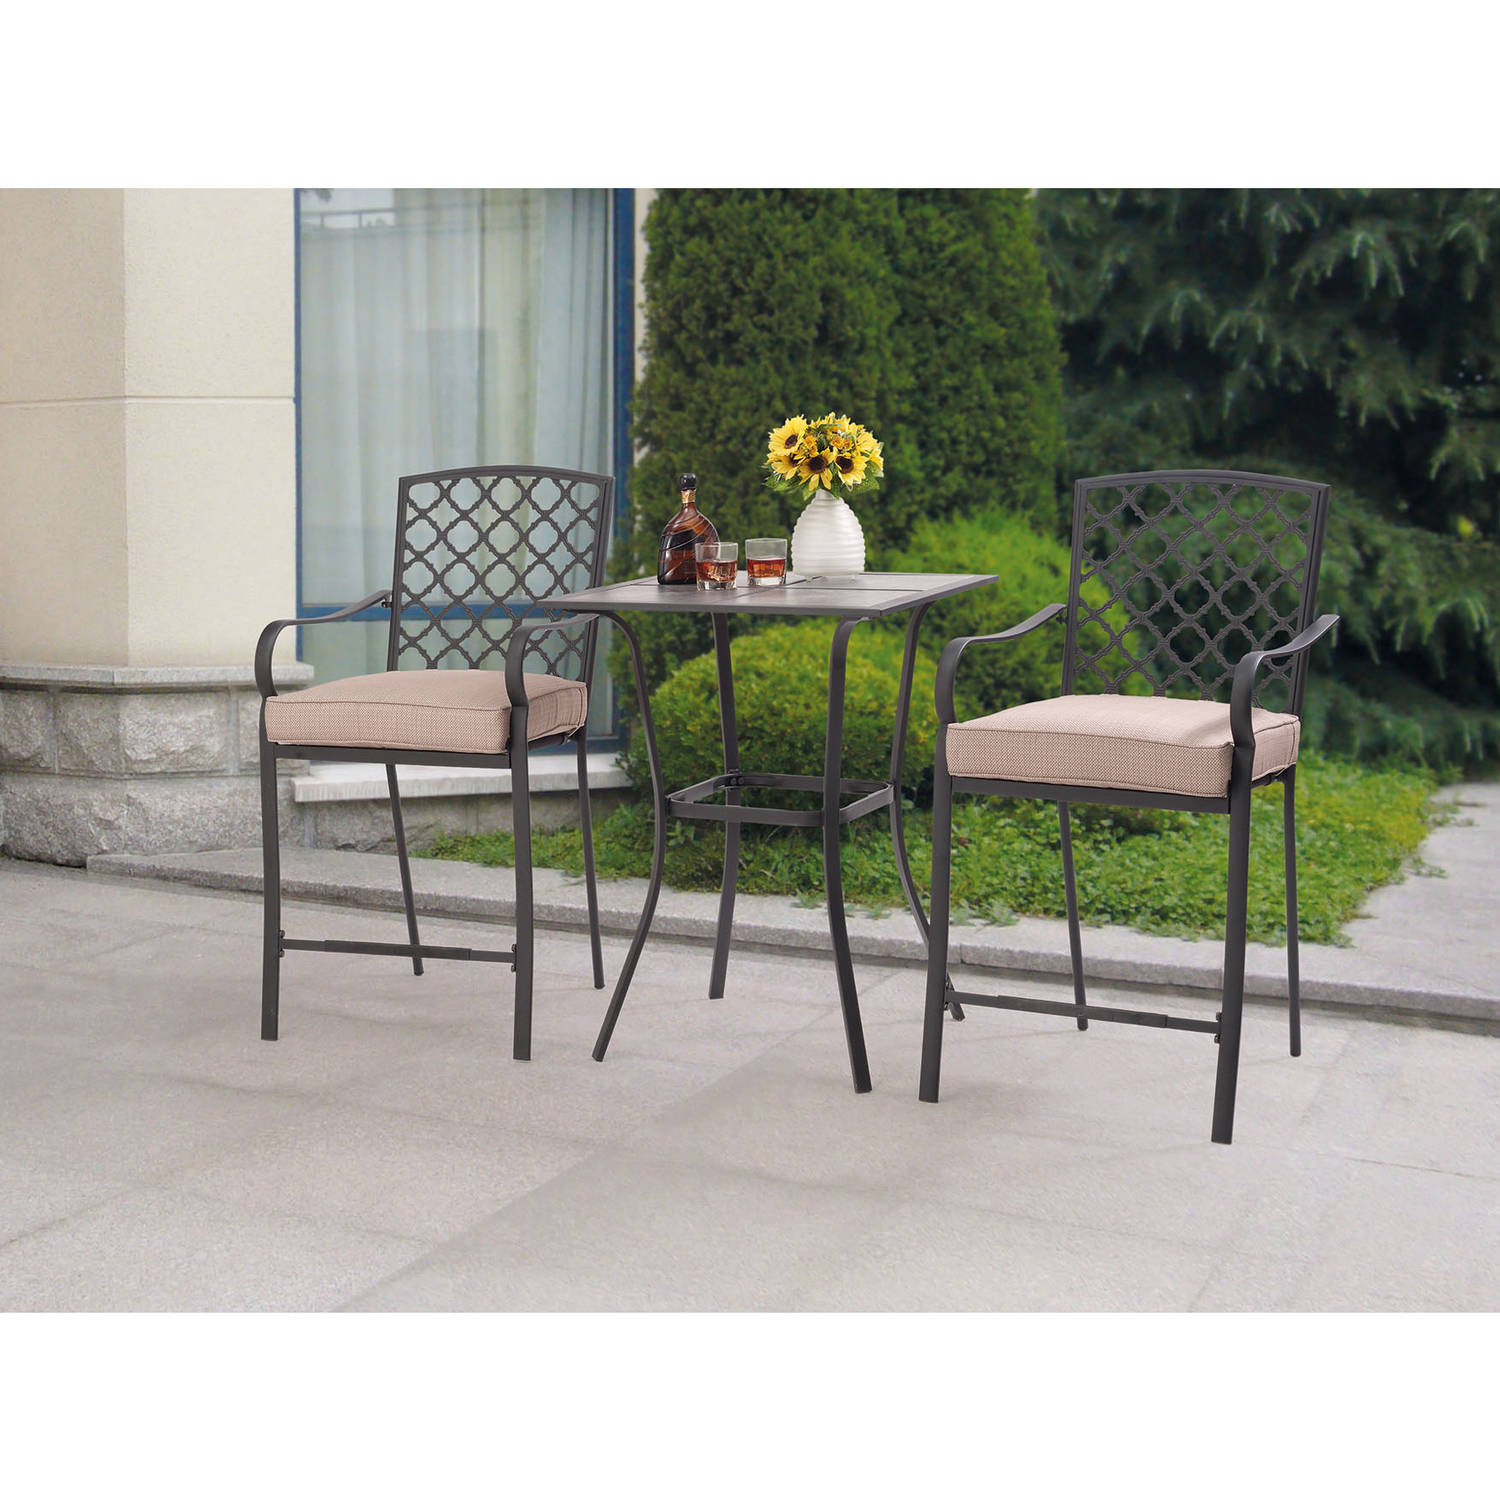 Best ideas about Walmart Patio Furniture . Save or Pin Best Choice Products Cast Aluminum Patio Bistro Furniture Now.